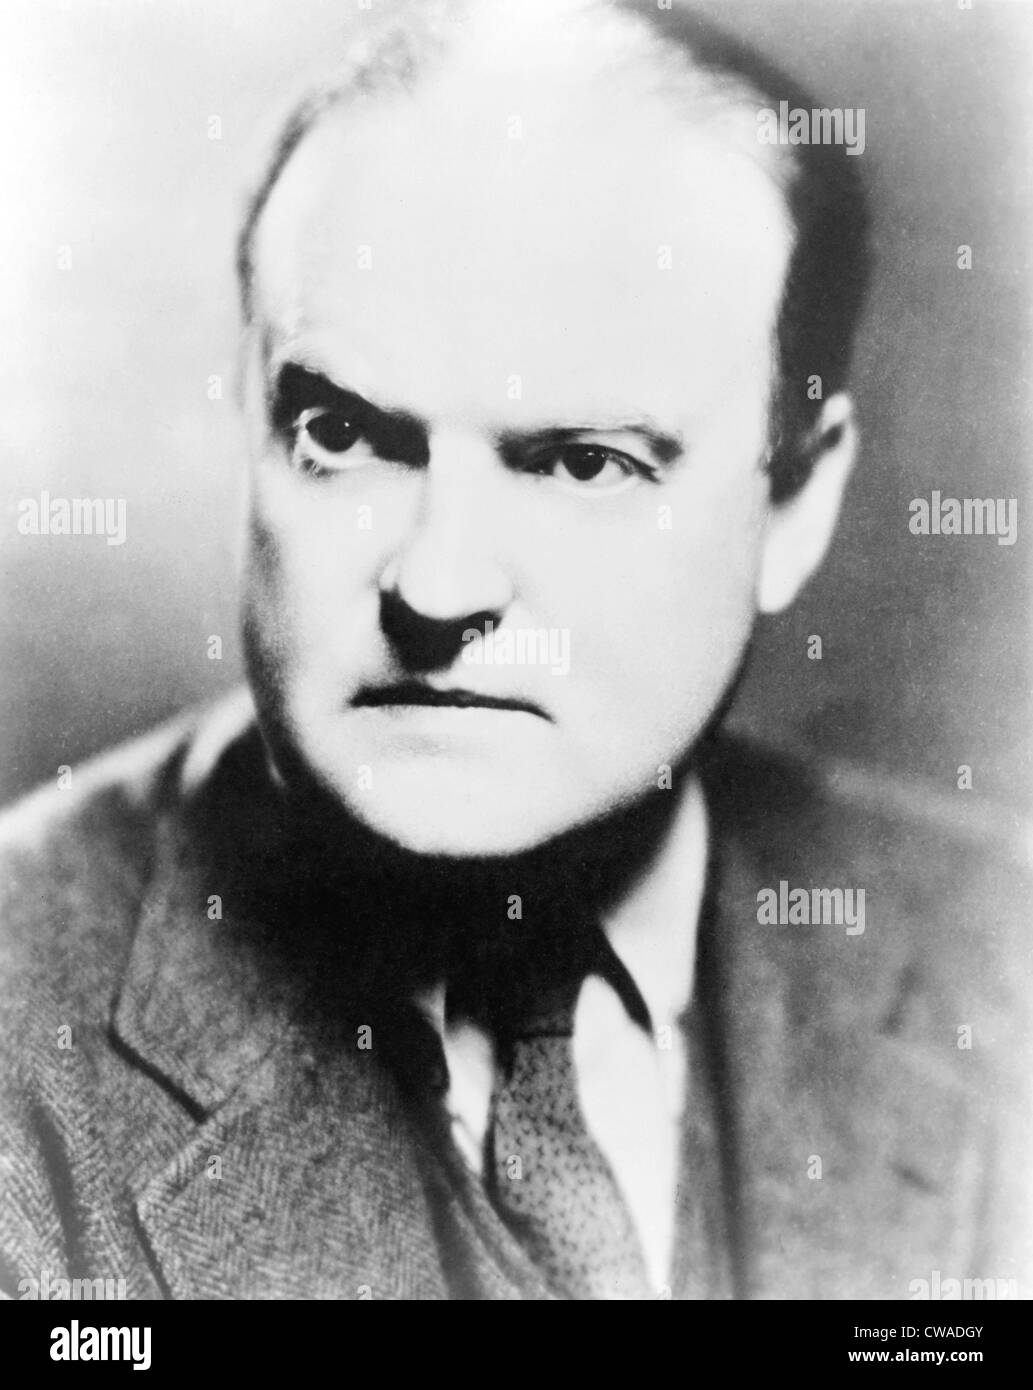 Edmund Wilson (1895-1972) editor and prominent literary critic, 1946. - Stock Image